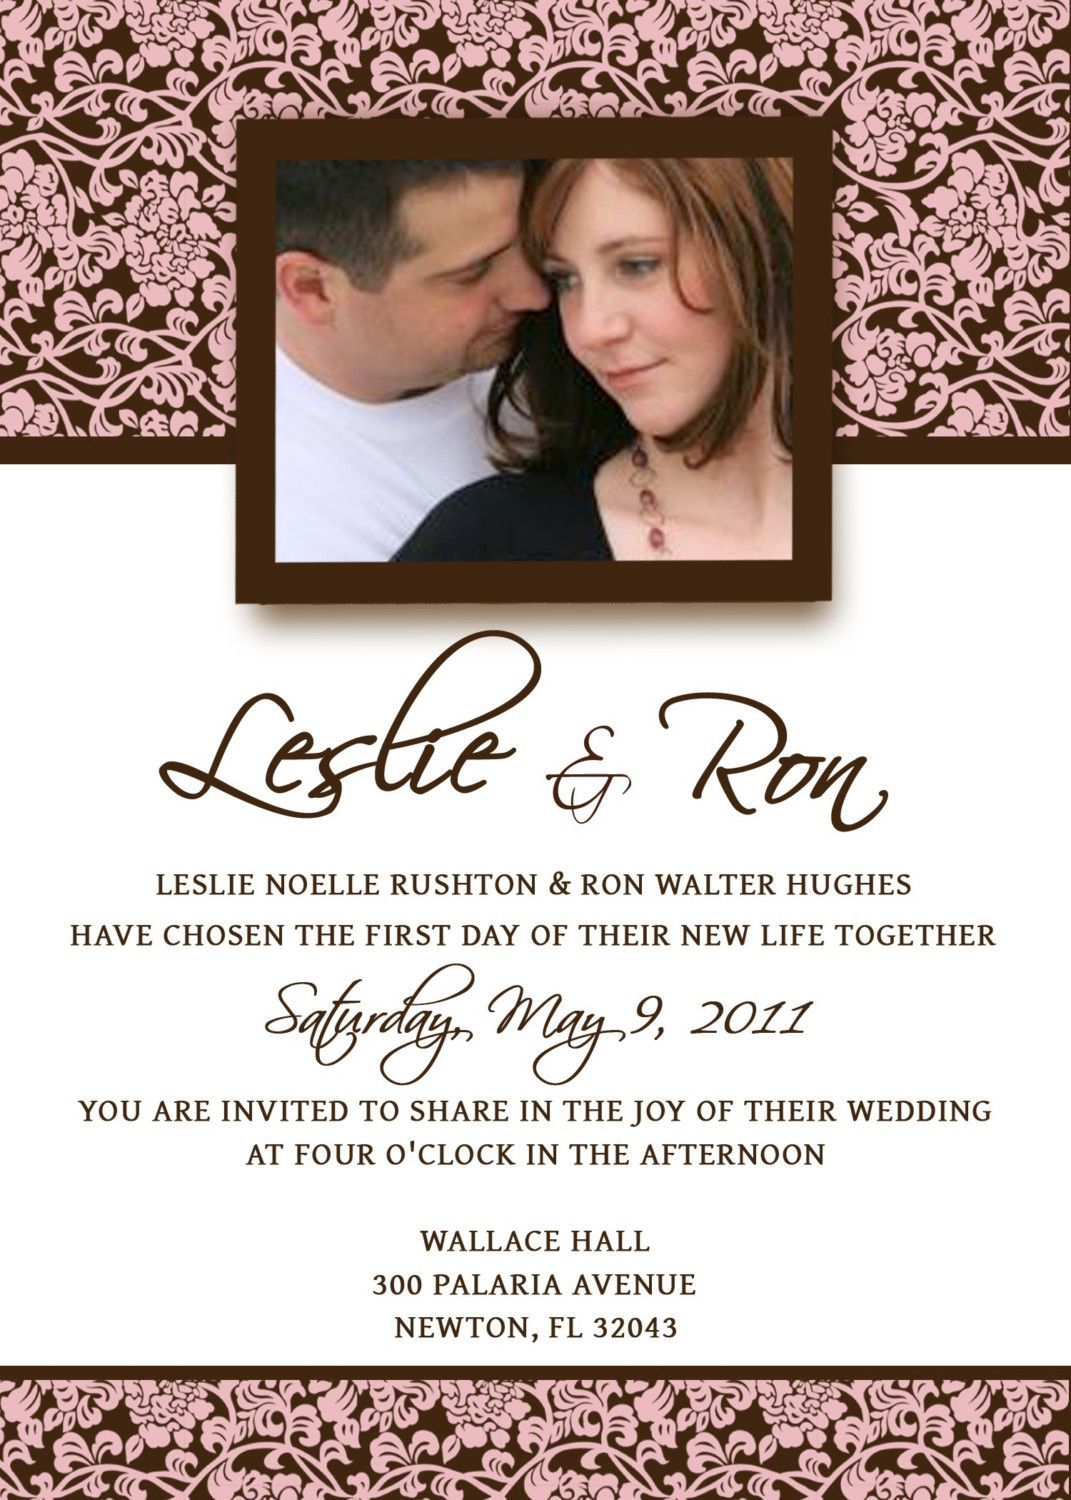 Wedding Invitation Email Formerly Oneheart Weddings Office Meeting Sample Template